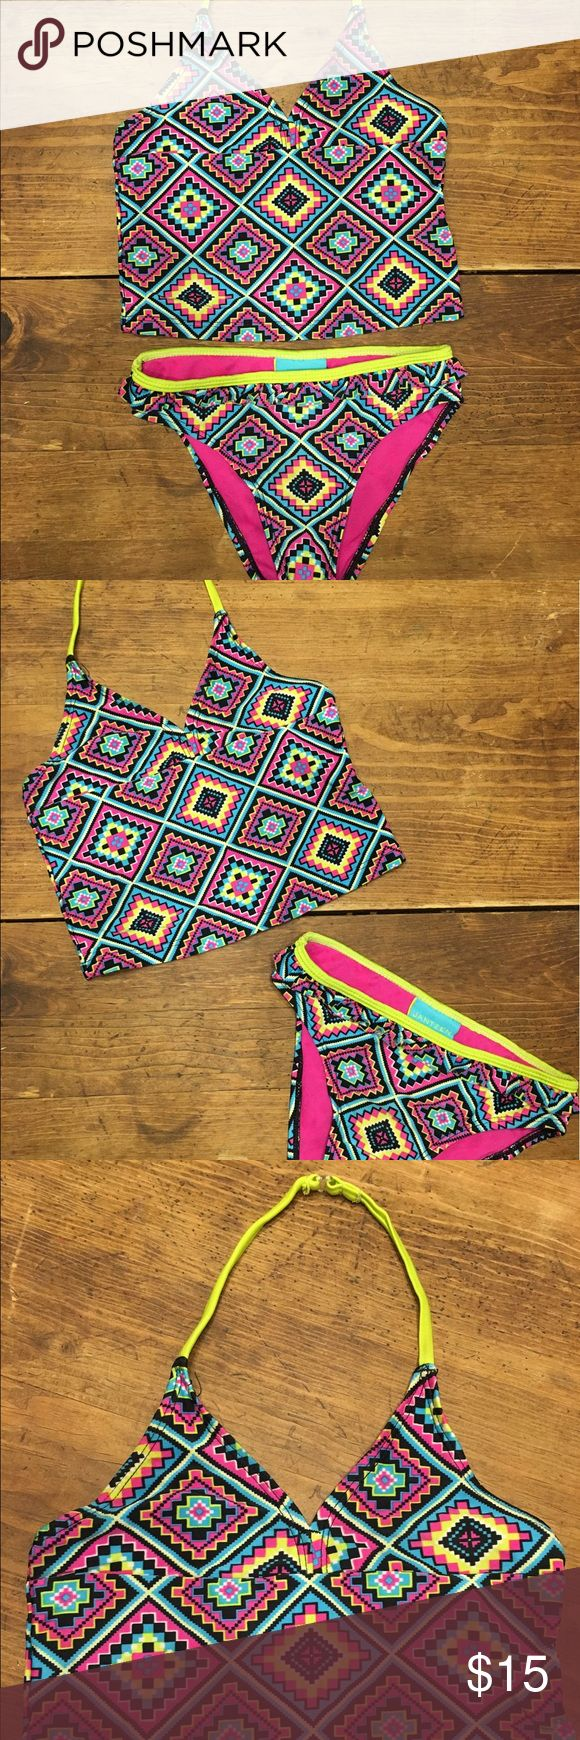 Girls Jantzen Aztec Two Piece Swimsuit Adorable tankini, in perfect condition!  No pilling, snags, or signs of wear!  Size 5. Jantzen Swim